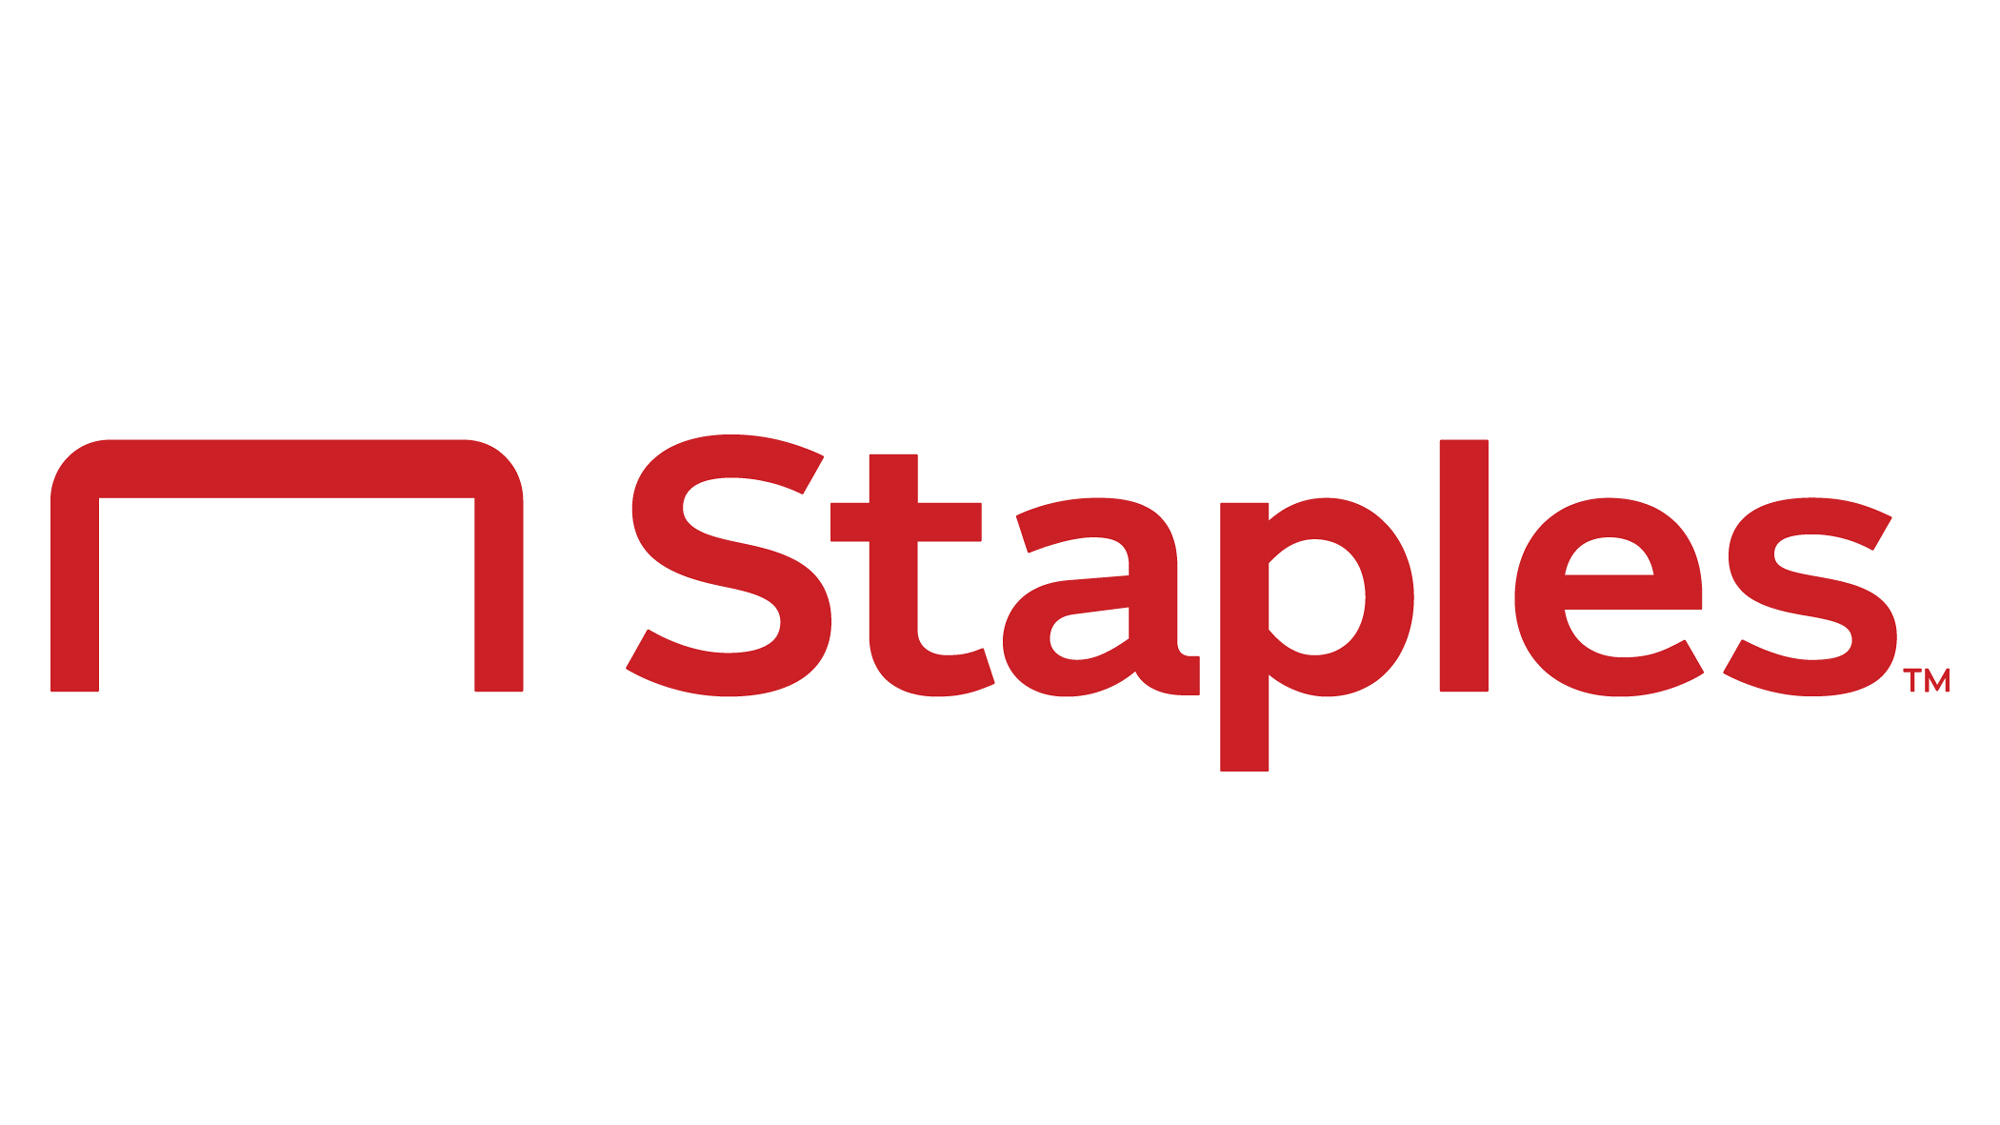 25% Off For Military At Staples until 11/16